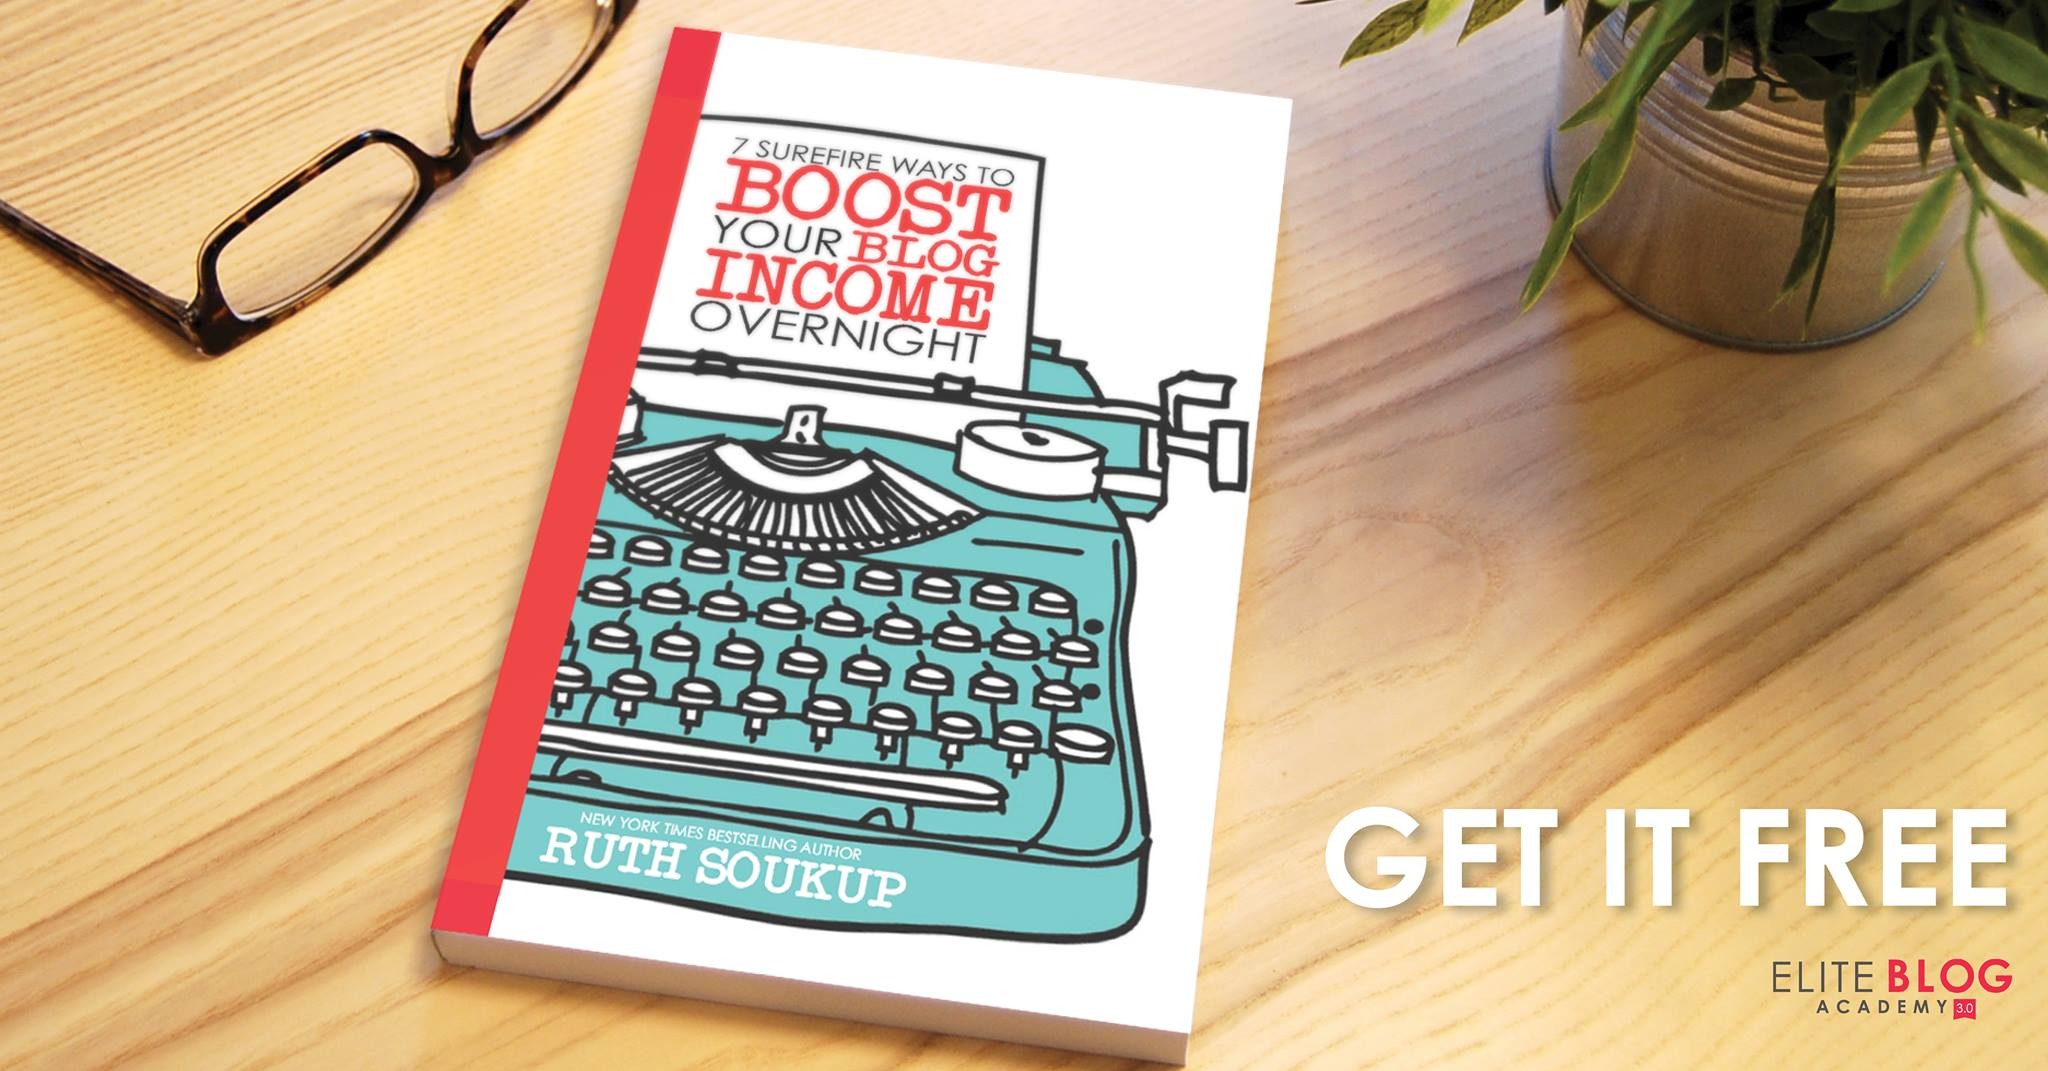 7 SUREFIRE WAYS TO BOOST YOUR BLOG INCOME OVERNIGHT is packed with practical tips to help you earn the blogging income you deserve!